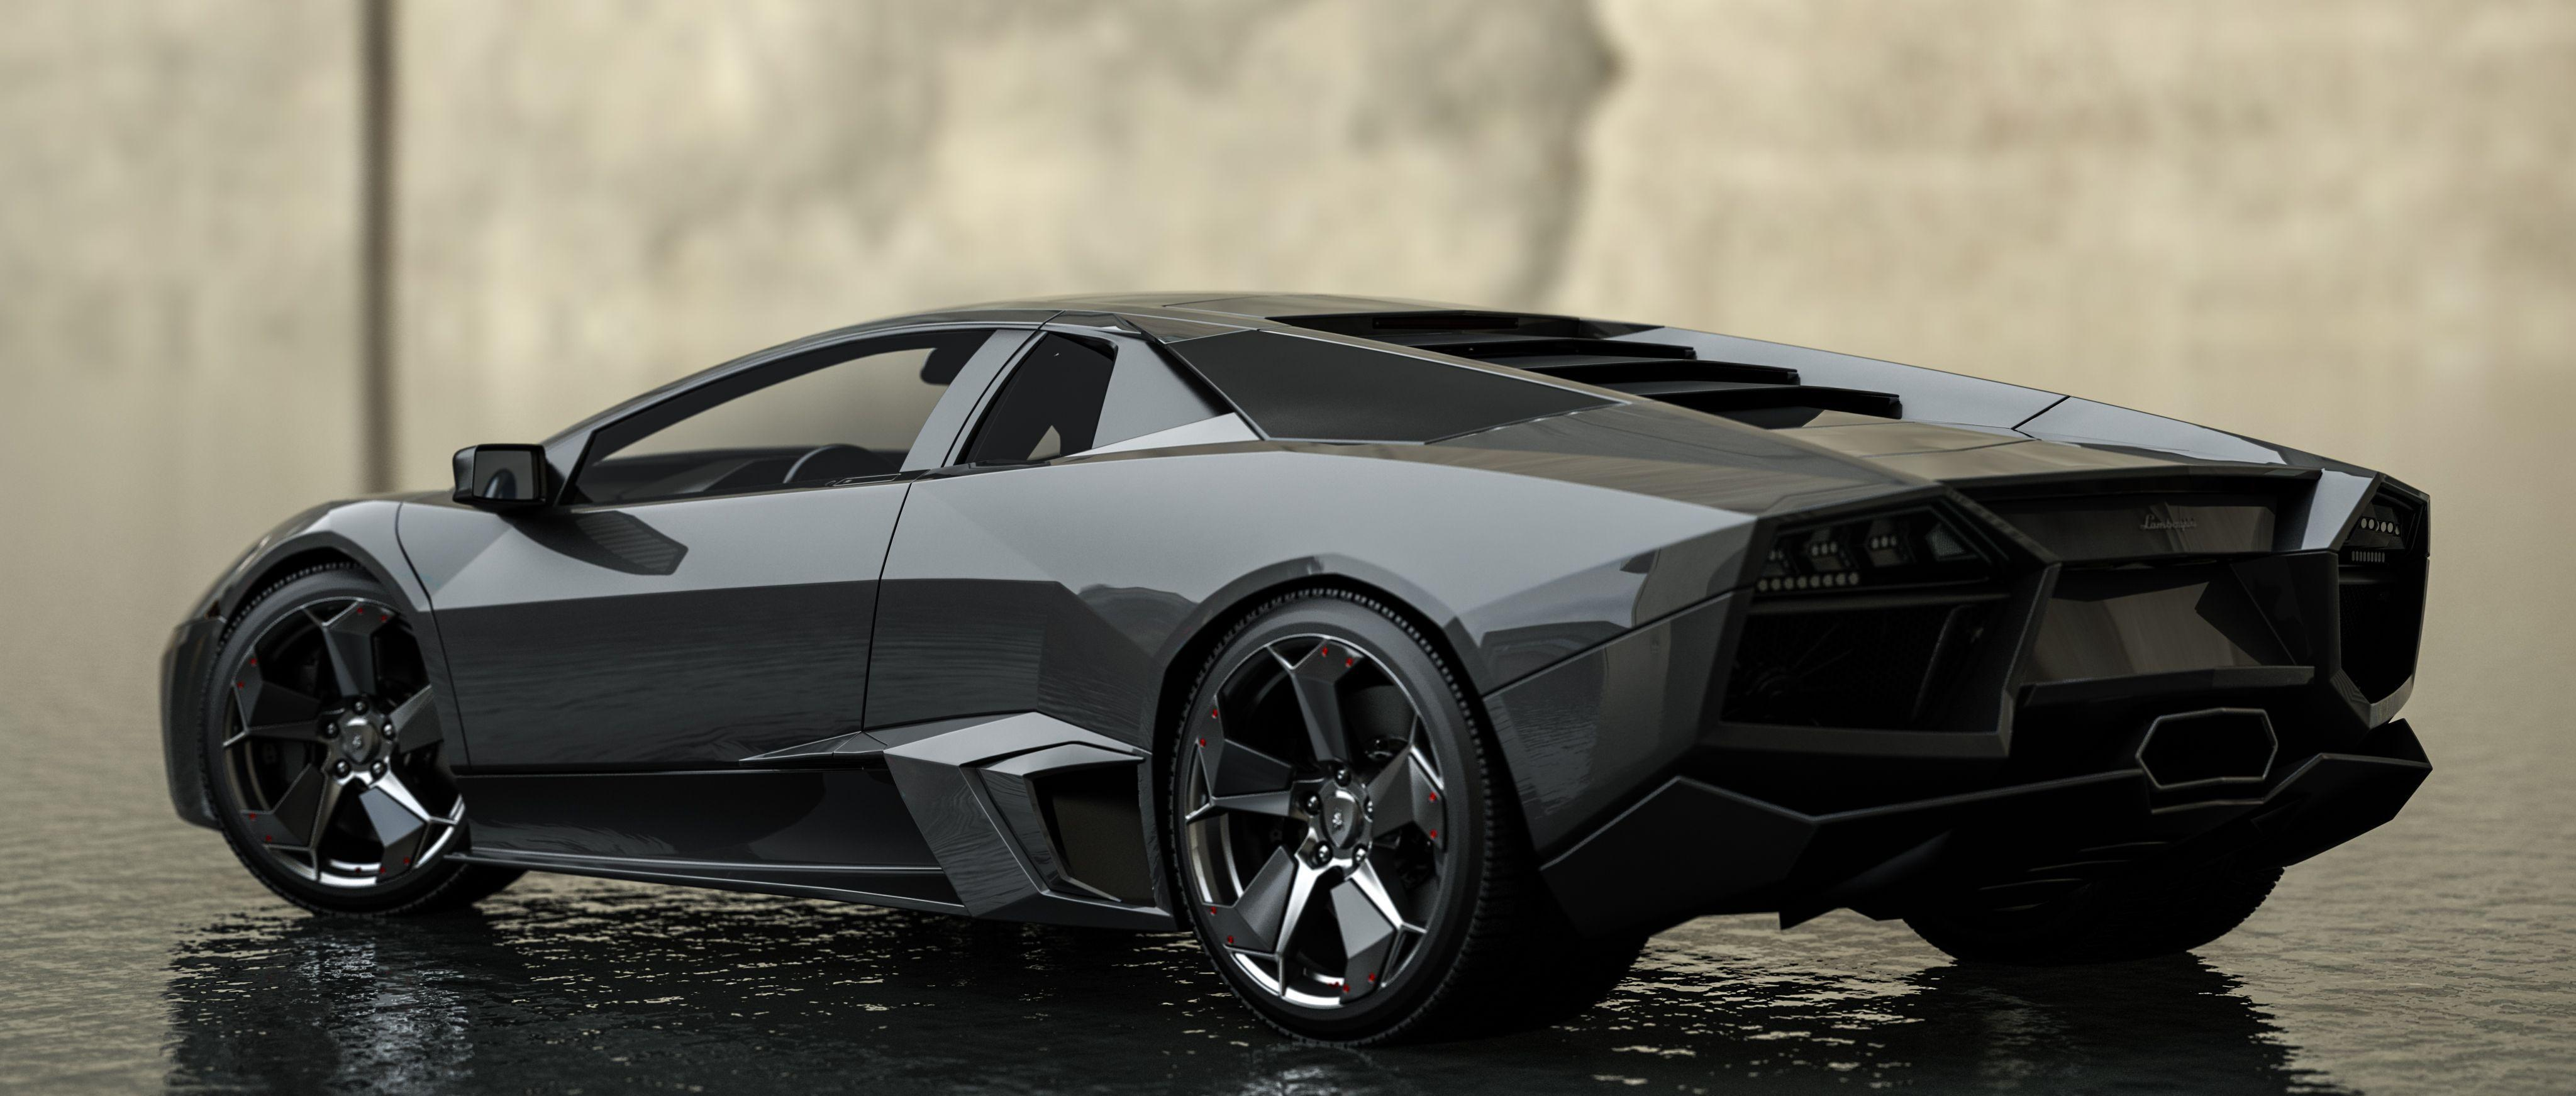 lamborghini reventon image wallpaper - photo #19